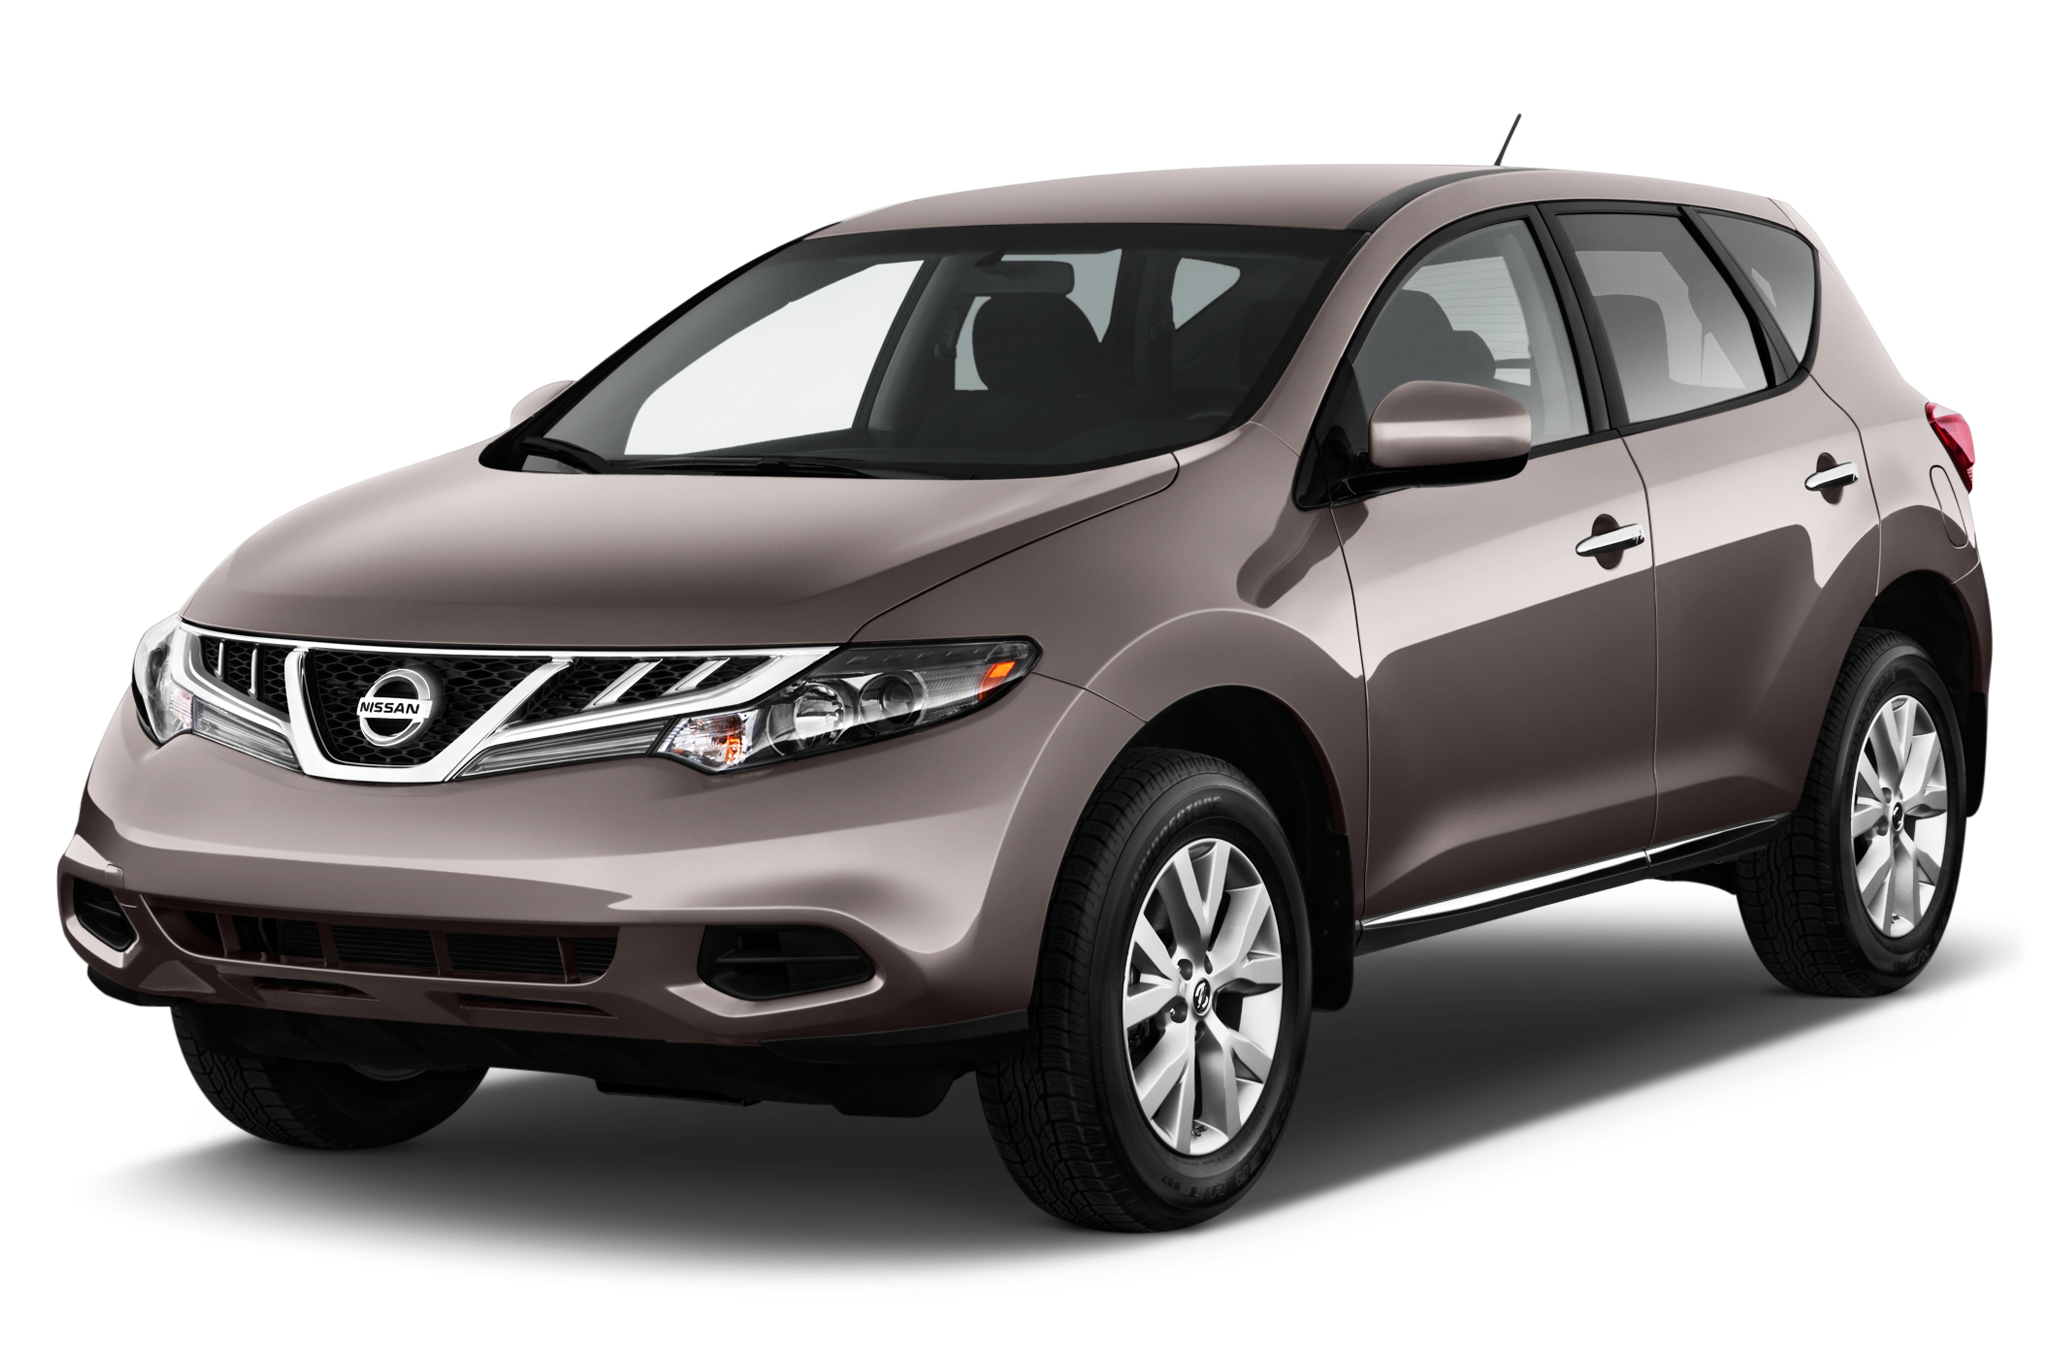 2014 nissan murano reviews and rating | motortrend